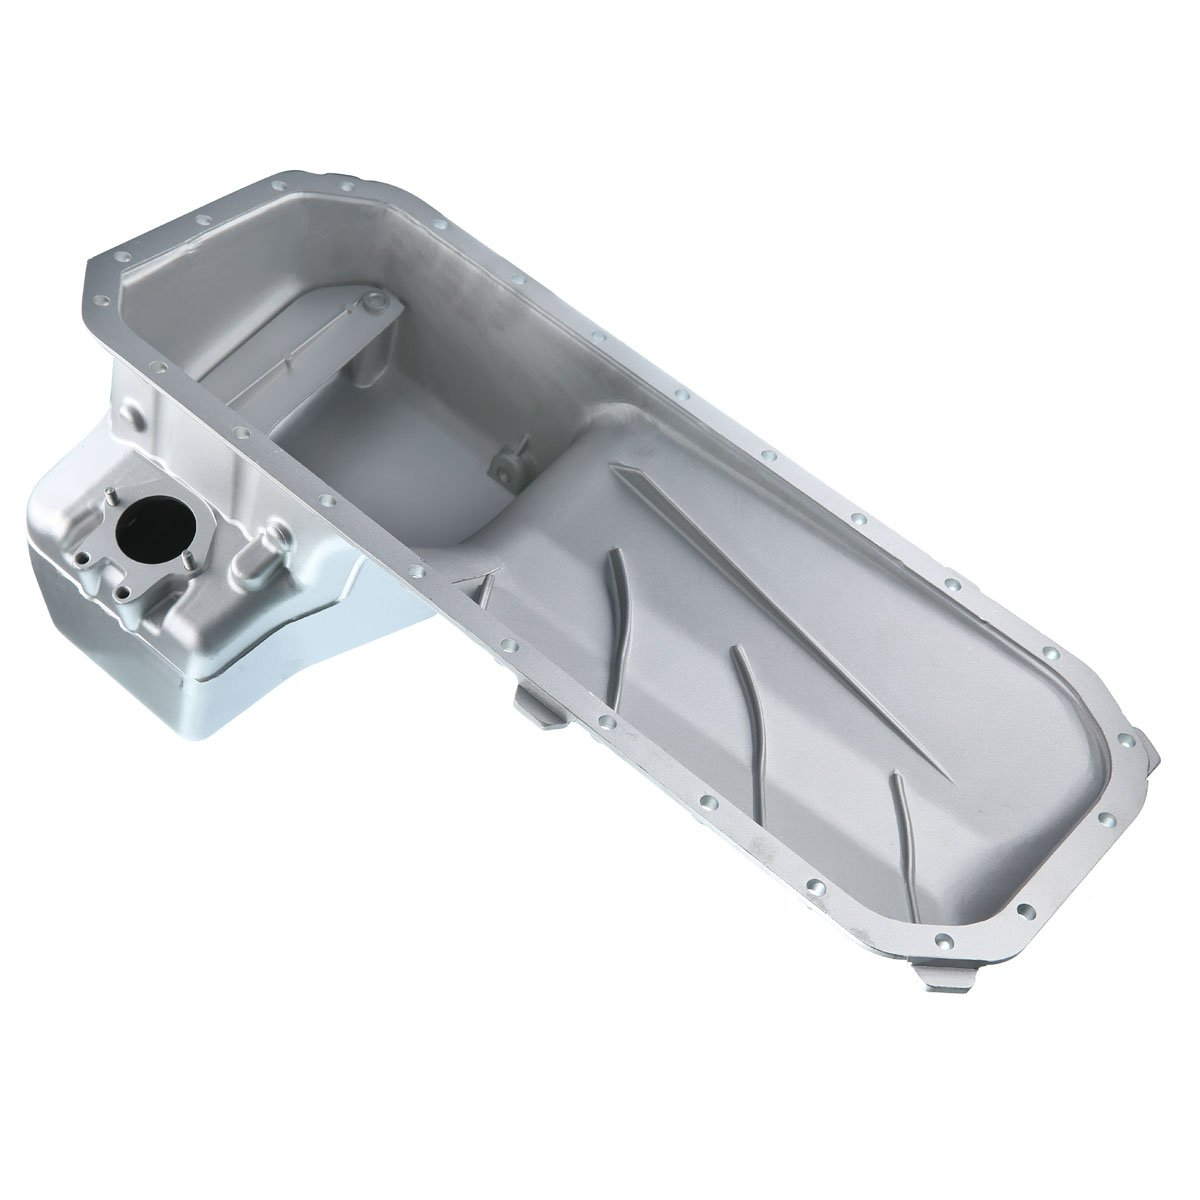 A-Premium Engine Oil pan for BMW E30 325 325e 325es 325i 325is M3 1987-1992 17207779226